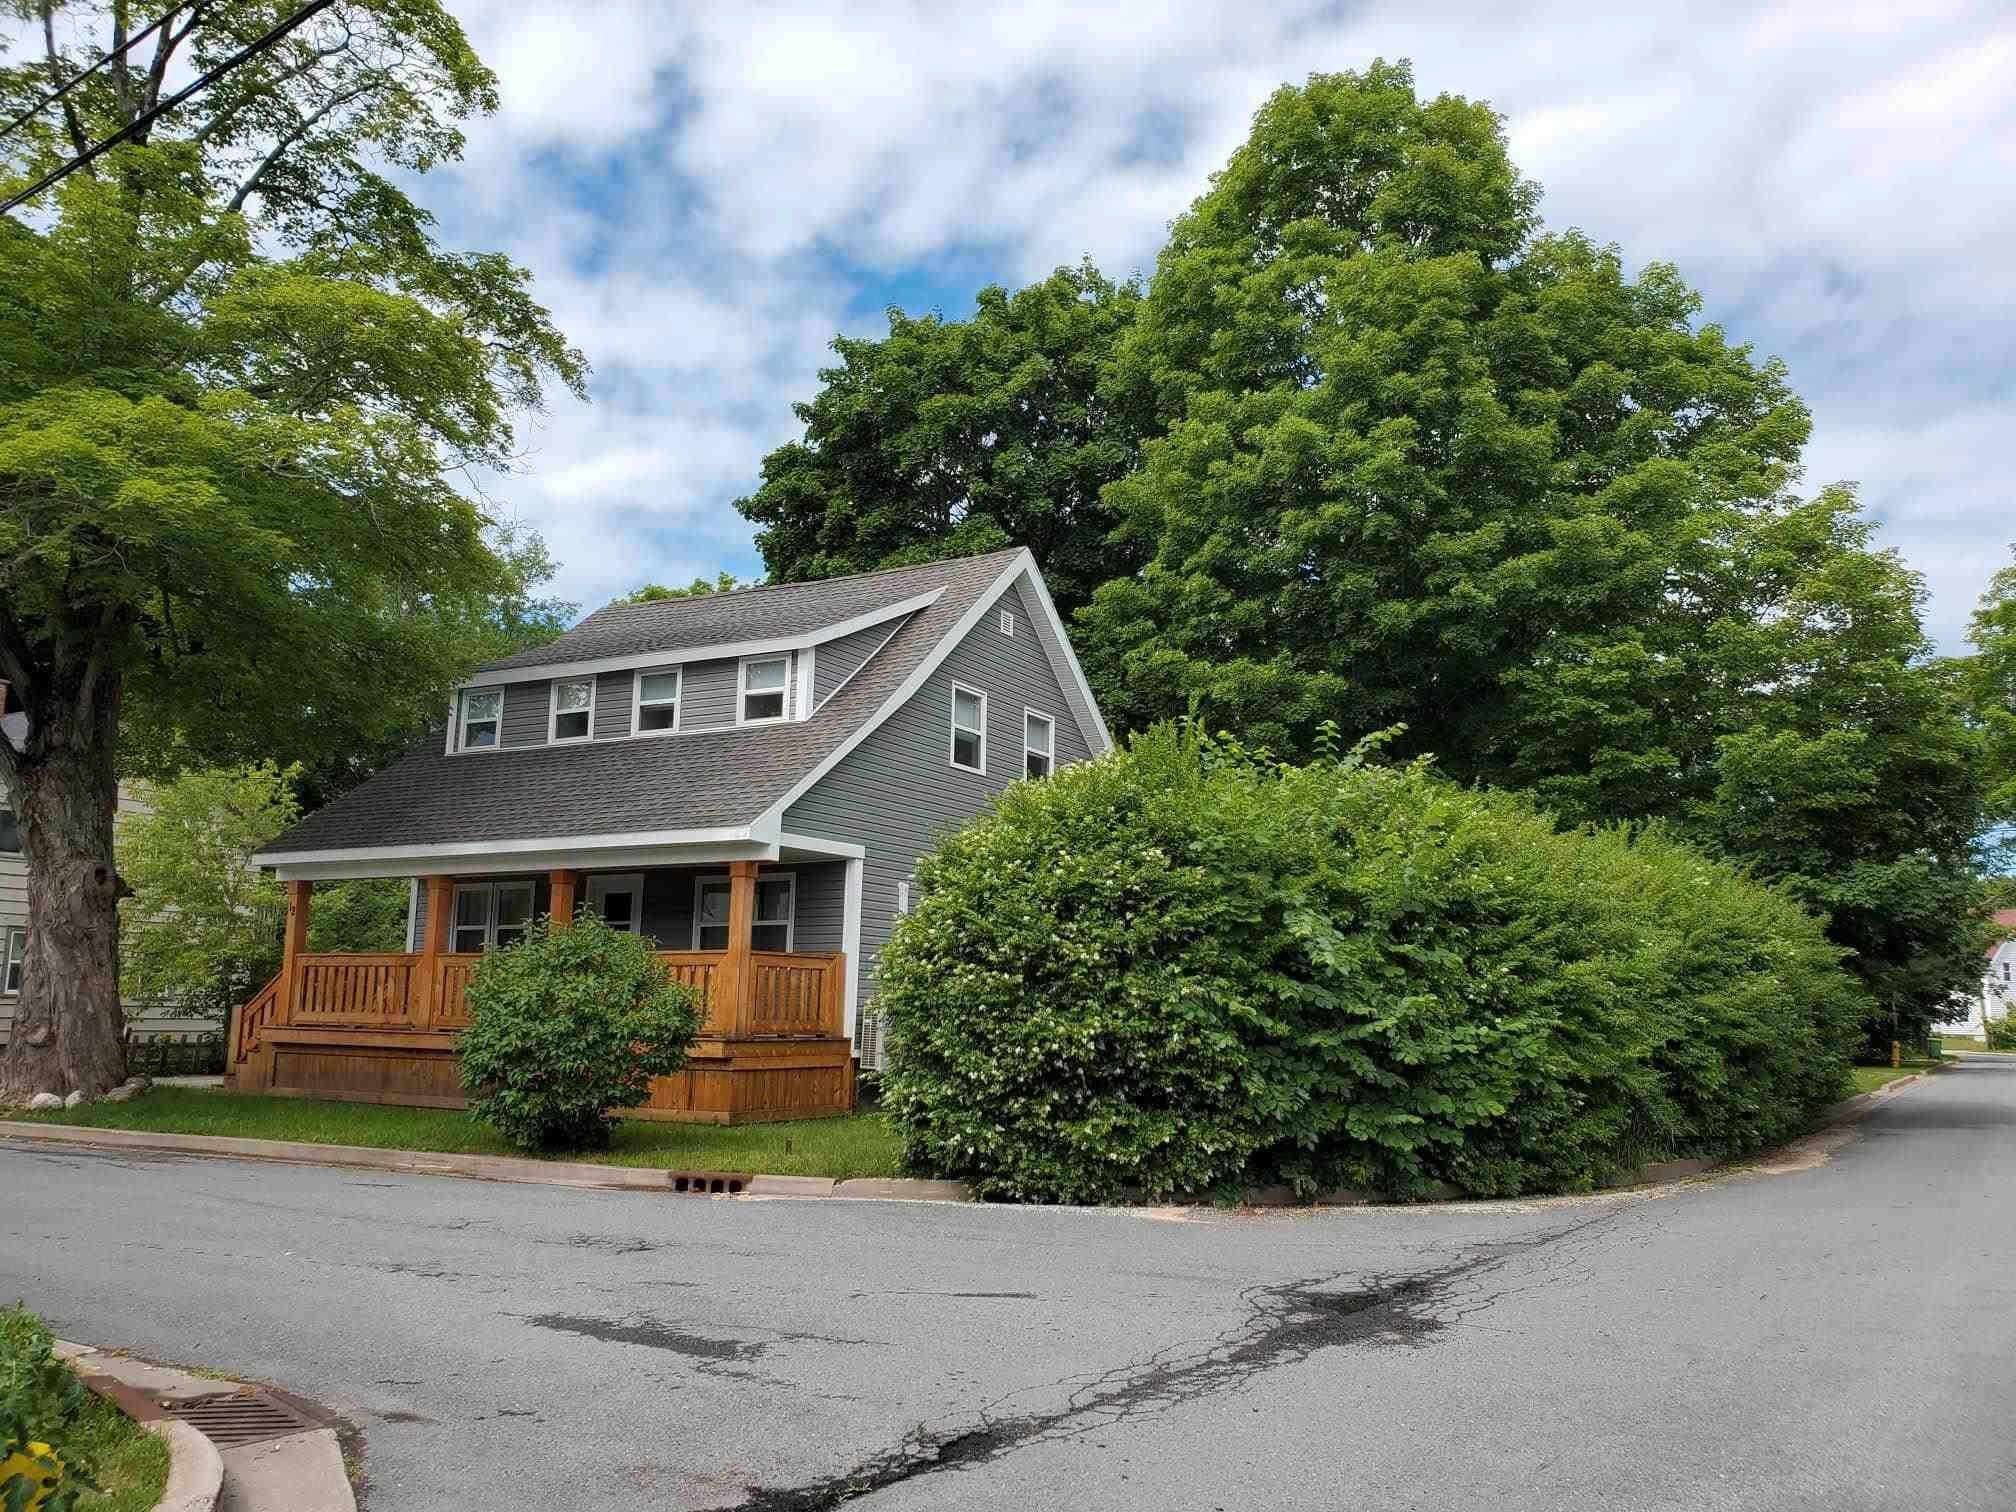 Main Photo: 12 CRESCENT Avenue in Kentville: 404-Kings County Residential for sale (Annapolis Valley)  : MLS®# 202117152